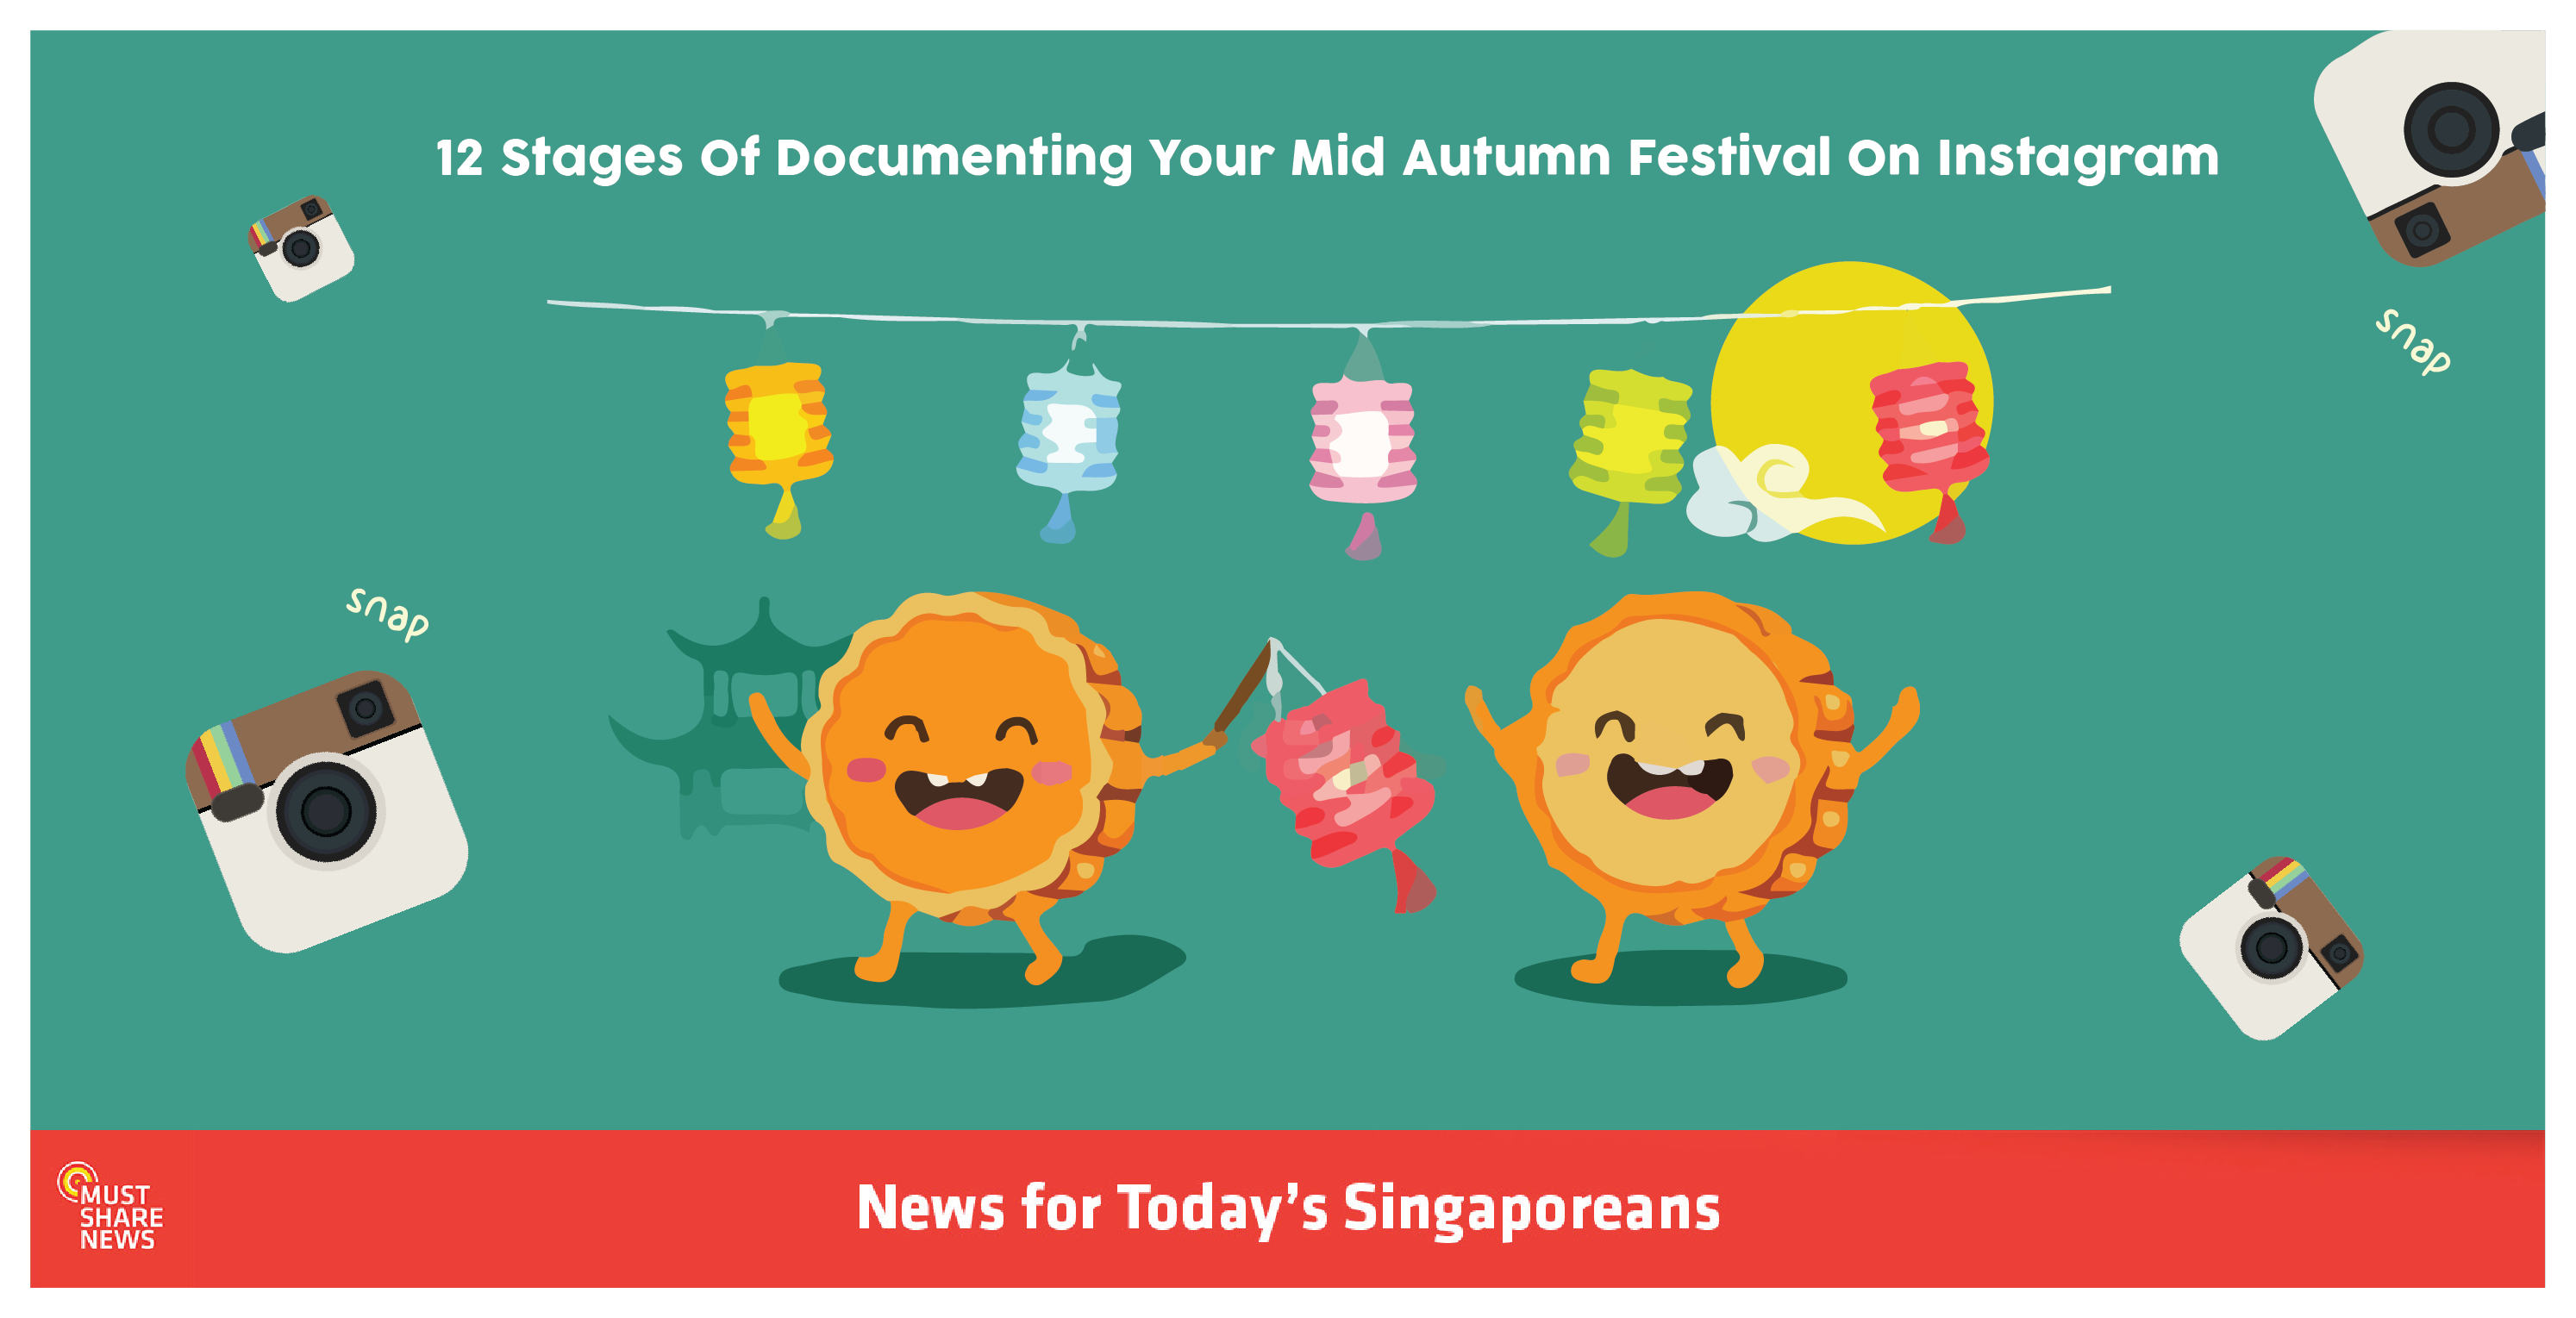 12 Stages Of Documenting Your Mid Autumn Festival On Instagram